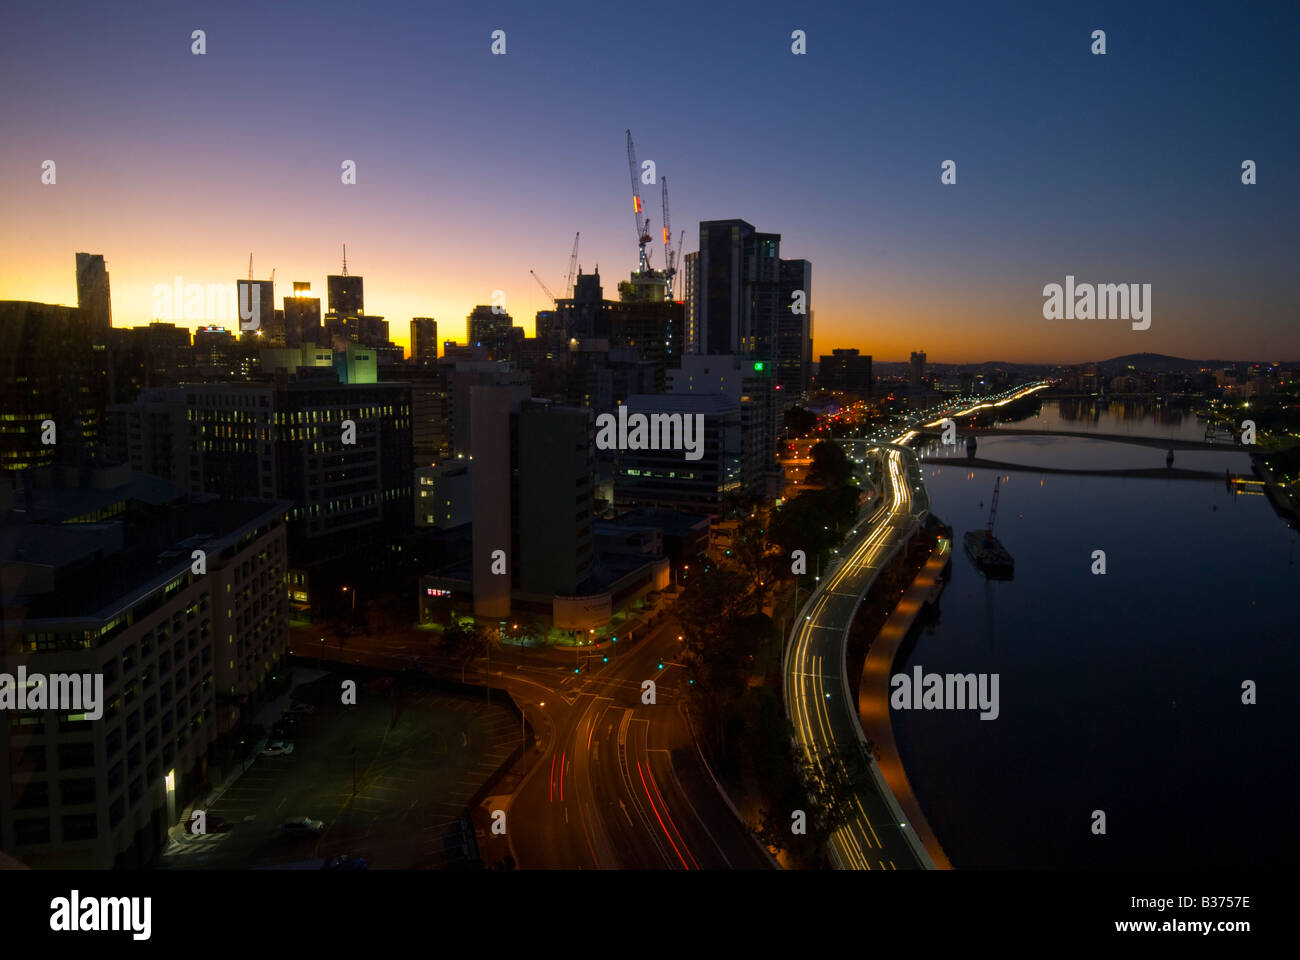 Brisbane city skyline along the Brisbane River at sunrise - Stock Image